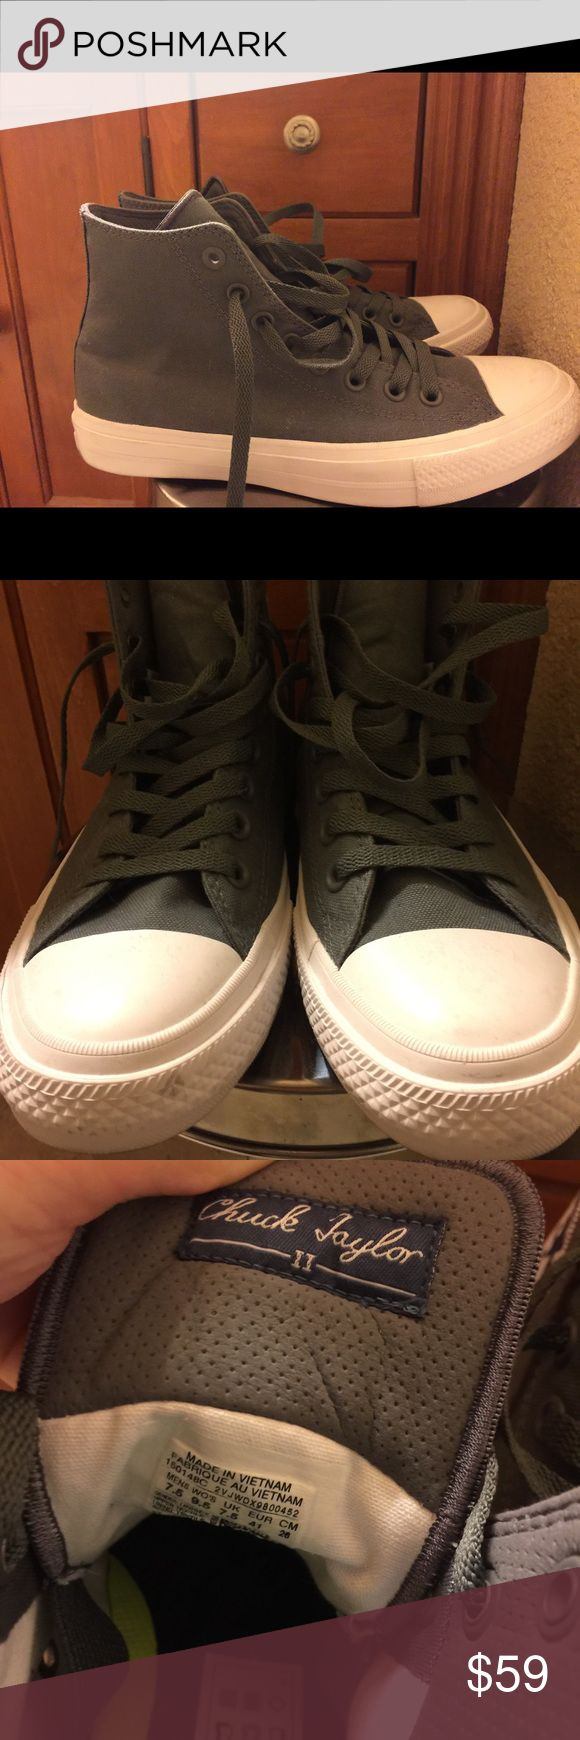 Grey Converse All Star II - High Tops • Worn once! • In EXCELLENT CONDITION!  • Super cute, comfy! Selling cause it doesn't look good on me ☹️ • Perfect for work, lounging, going out, running errands!  • Size: Women's 9.5, Color: Grey  • Bundle 2 or more items to get 20% off your entire purchase! 😊  • Price is firm!   🚫NO LOWBALLING🚫 🚫NO HOLDS/TRADES🚫 Converse Shoes Sneakers